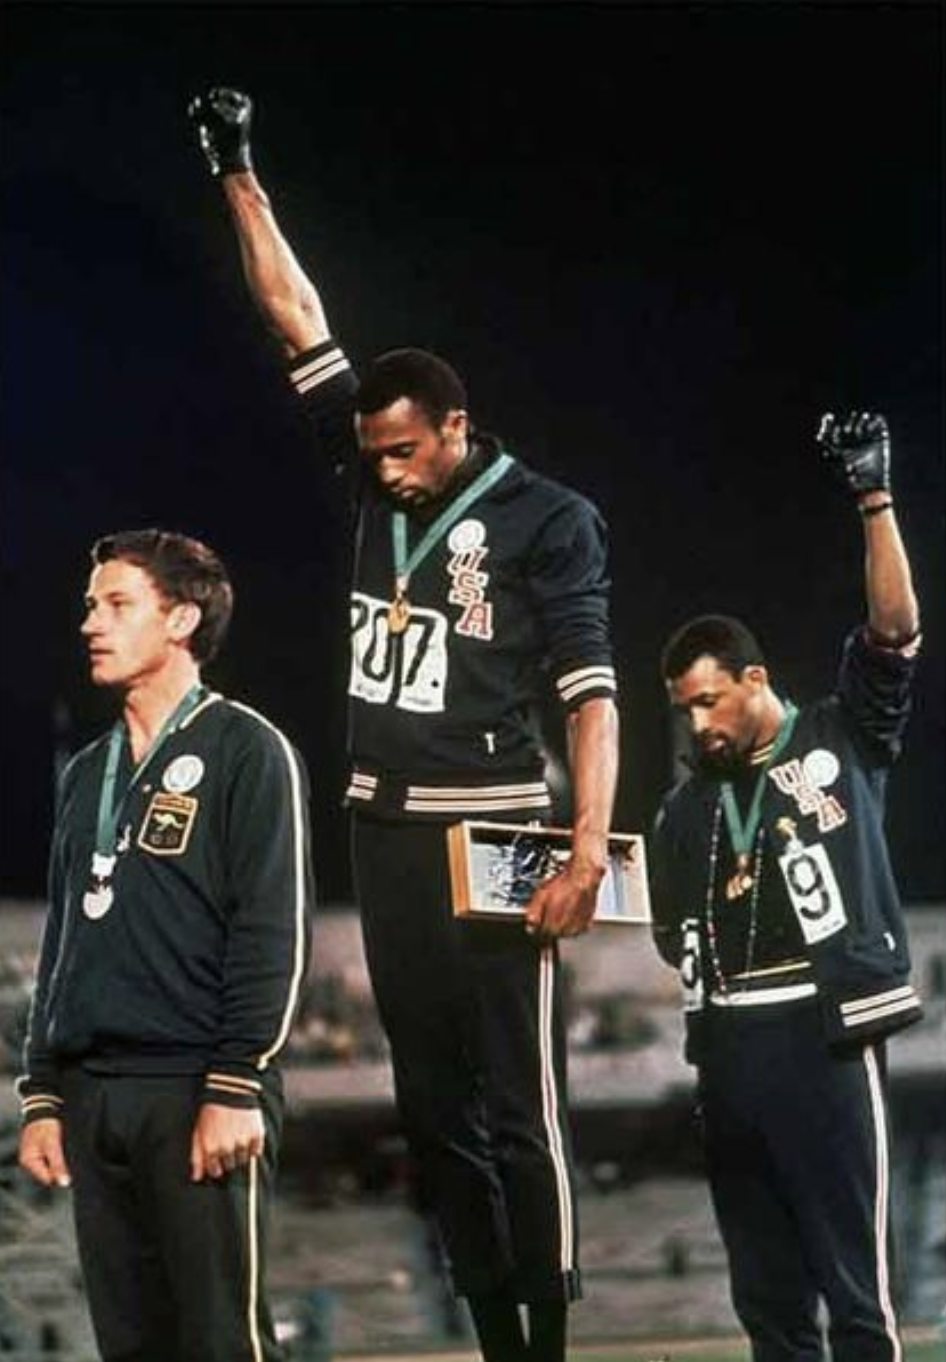 smith, norman, carlos 1968 olympics - John Dominos.jpg